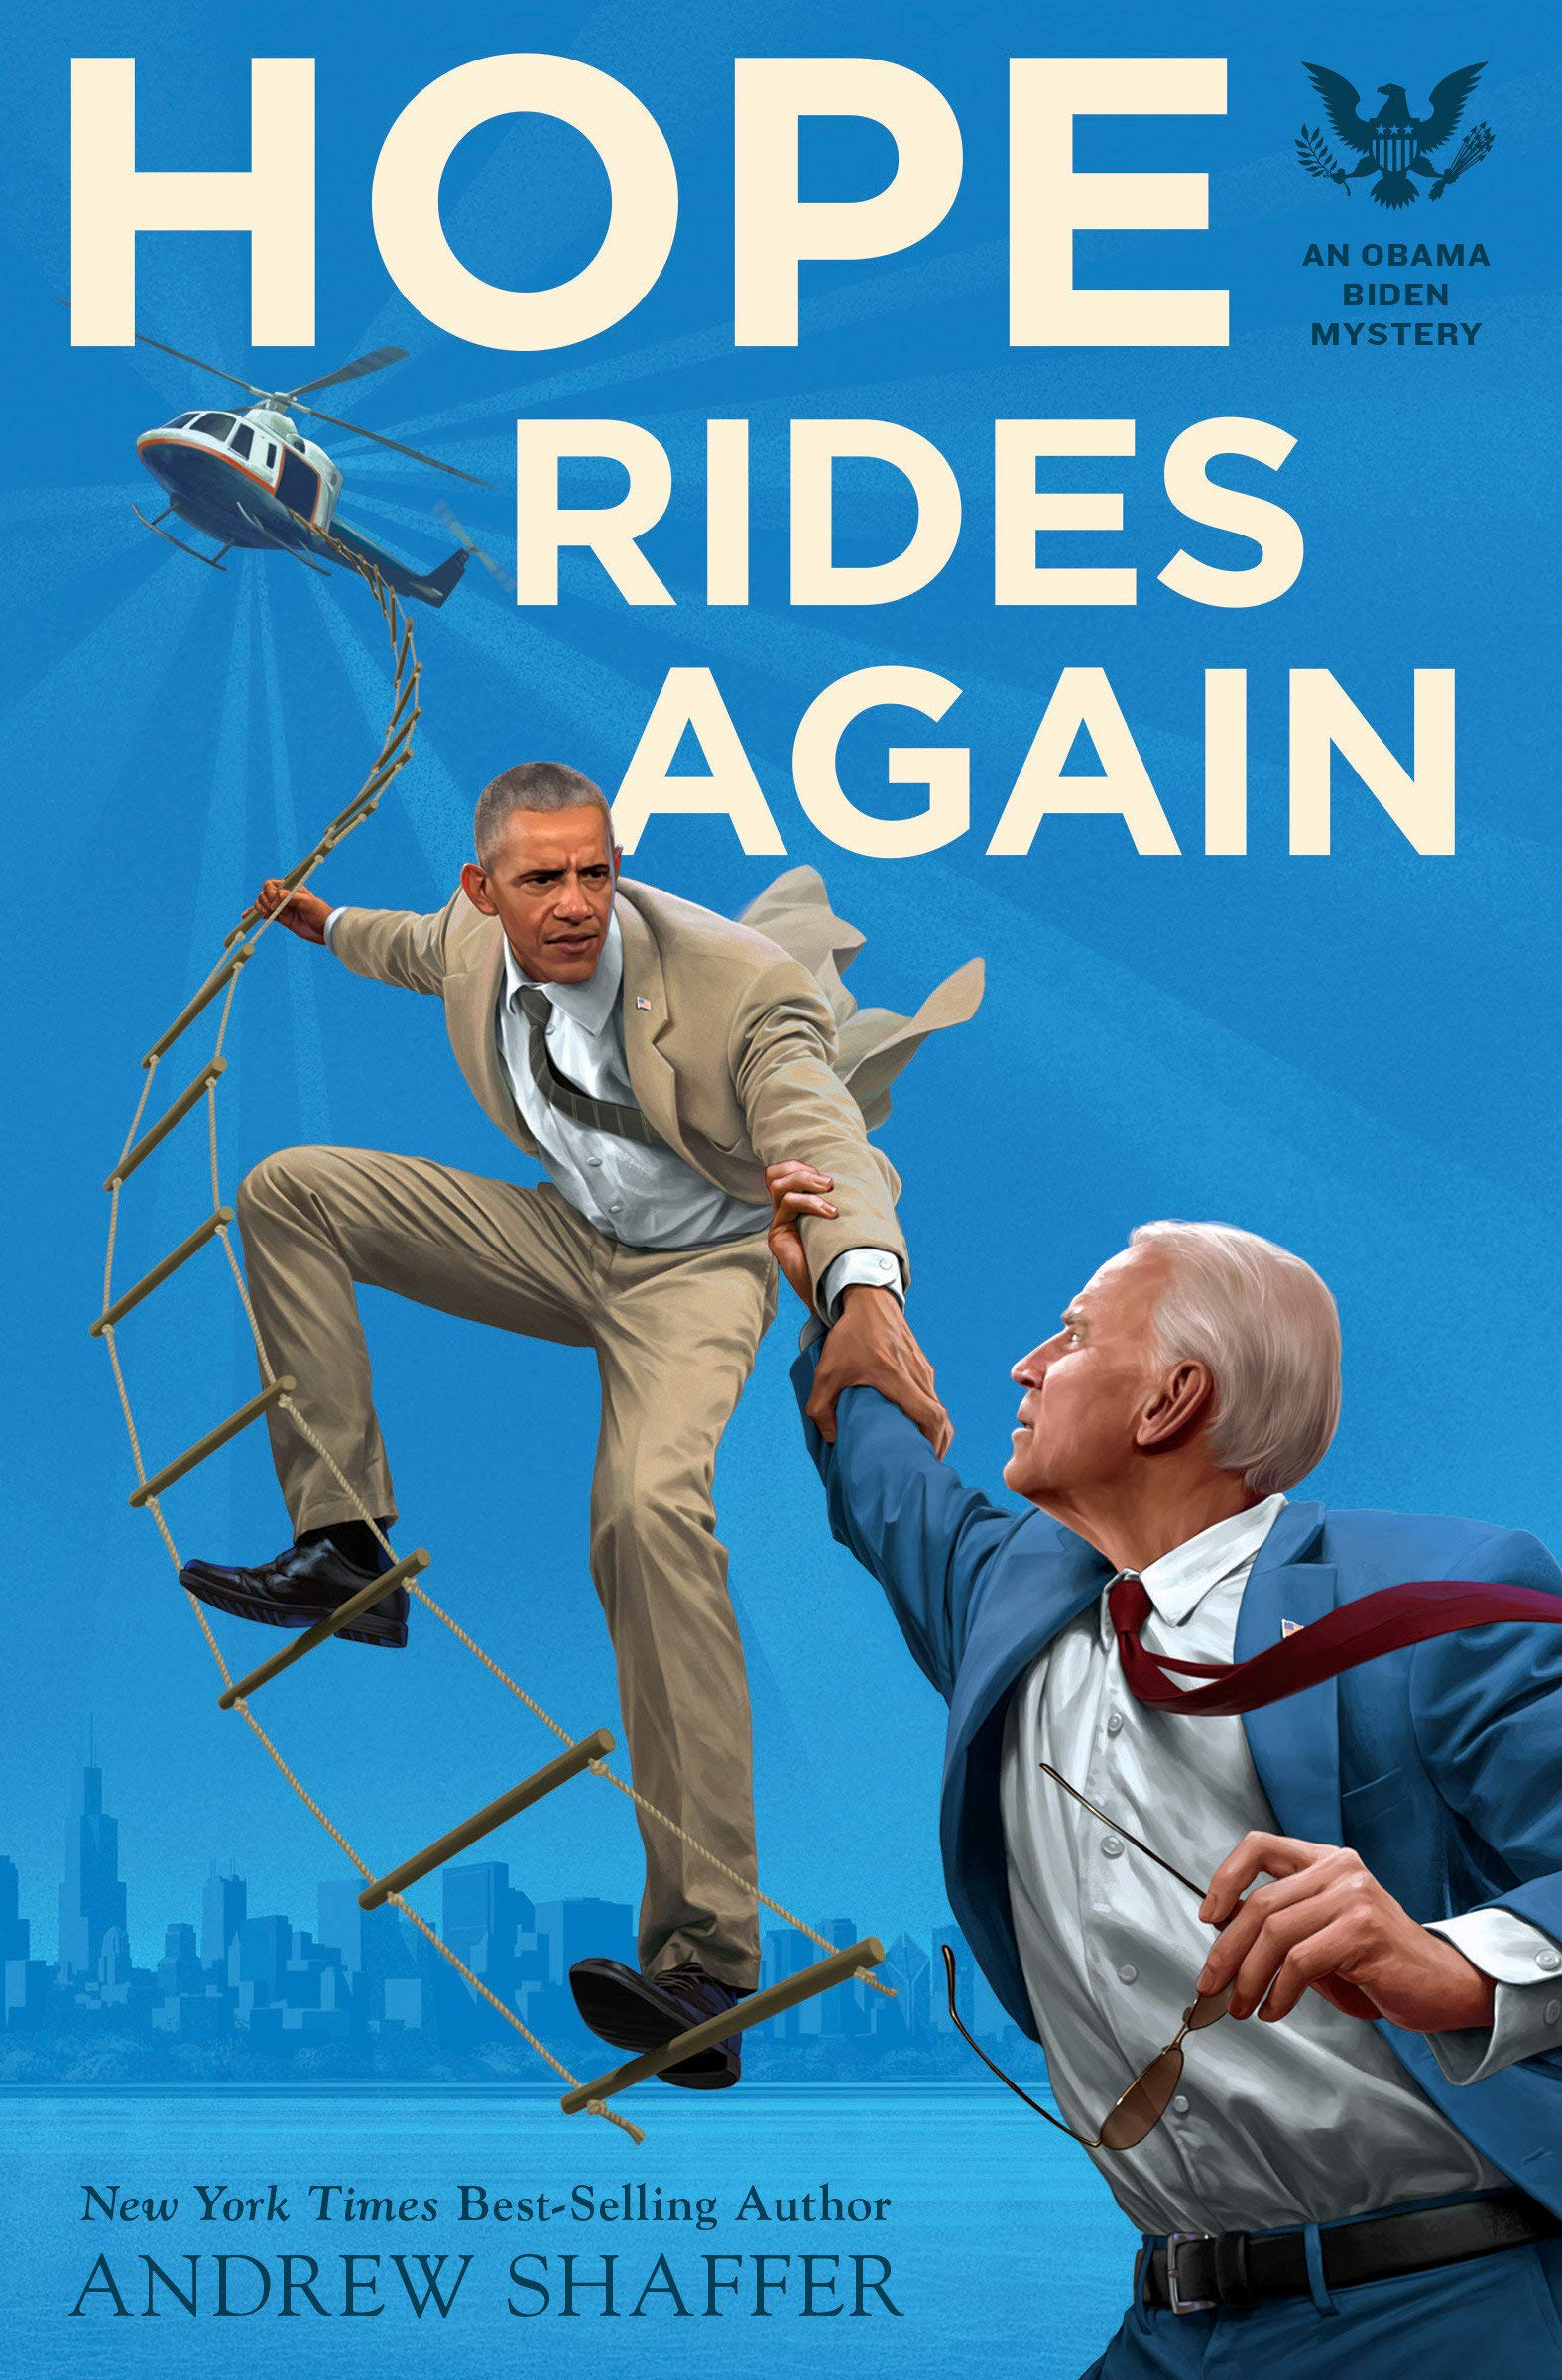 Amazon.com: Hope Rides Again: An Obama Biden Mystery (Obama Biden ...